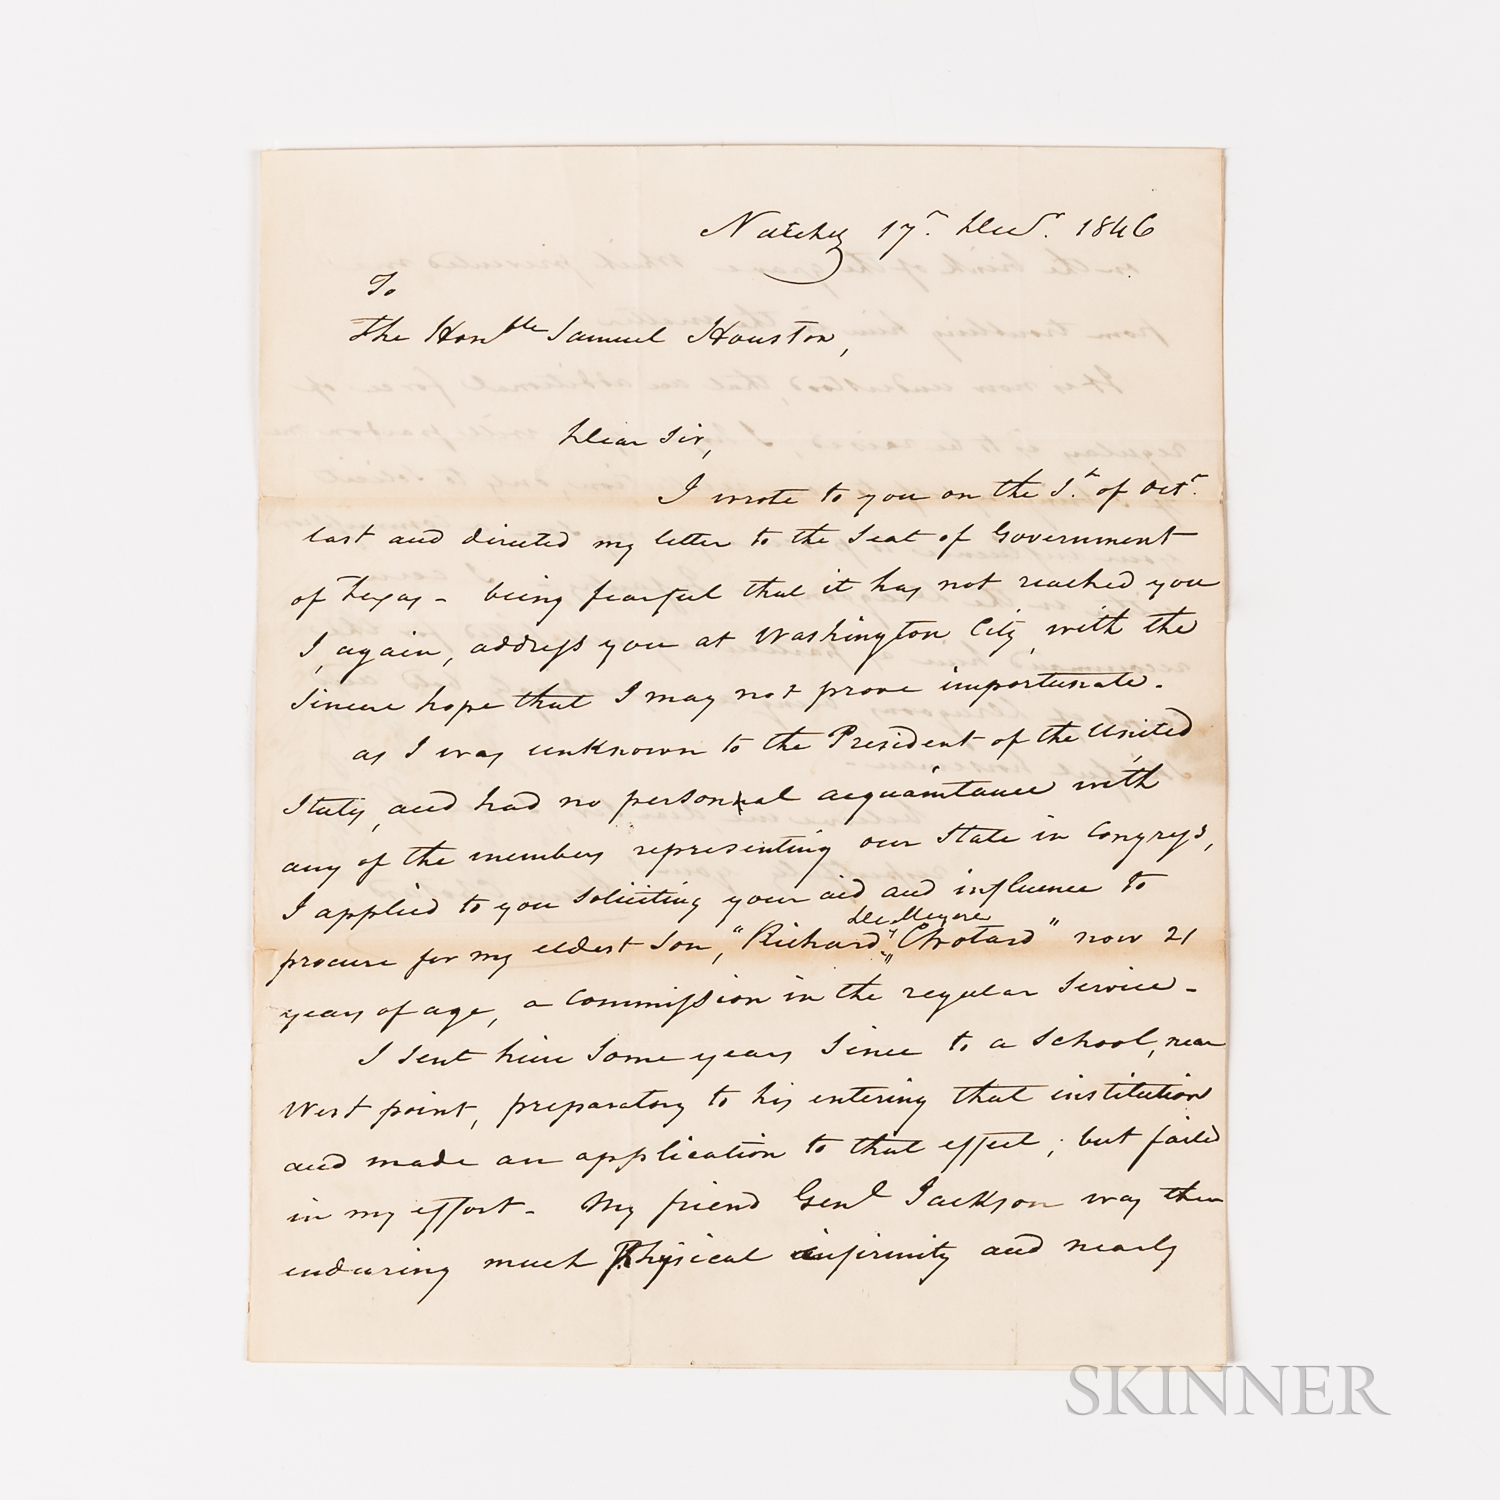 Chotard, Henry Autograph Letter Signed with Sam Houston (1793-1863) Autograph Note Signed Reply, 14 January 1846.